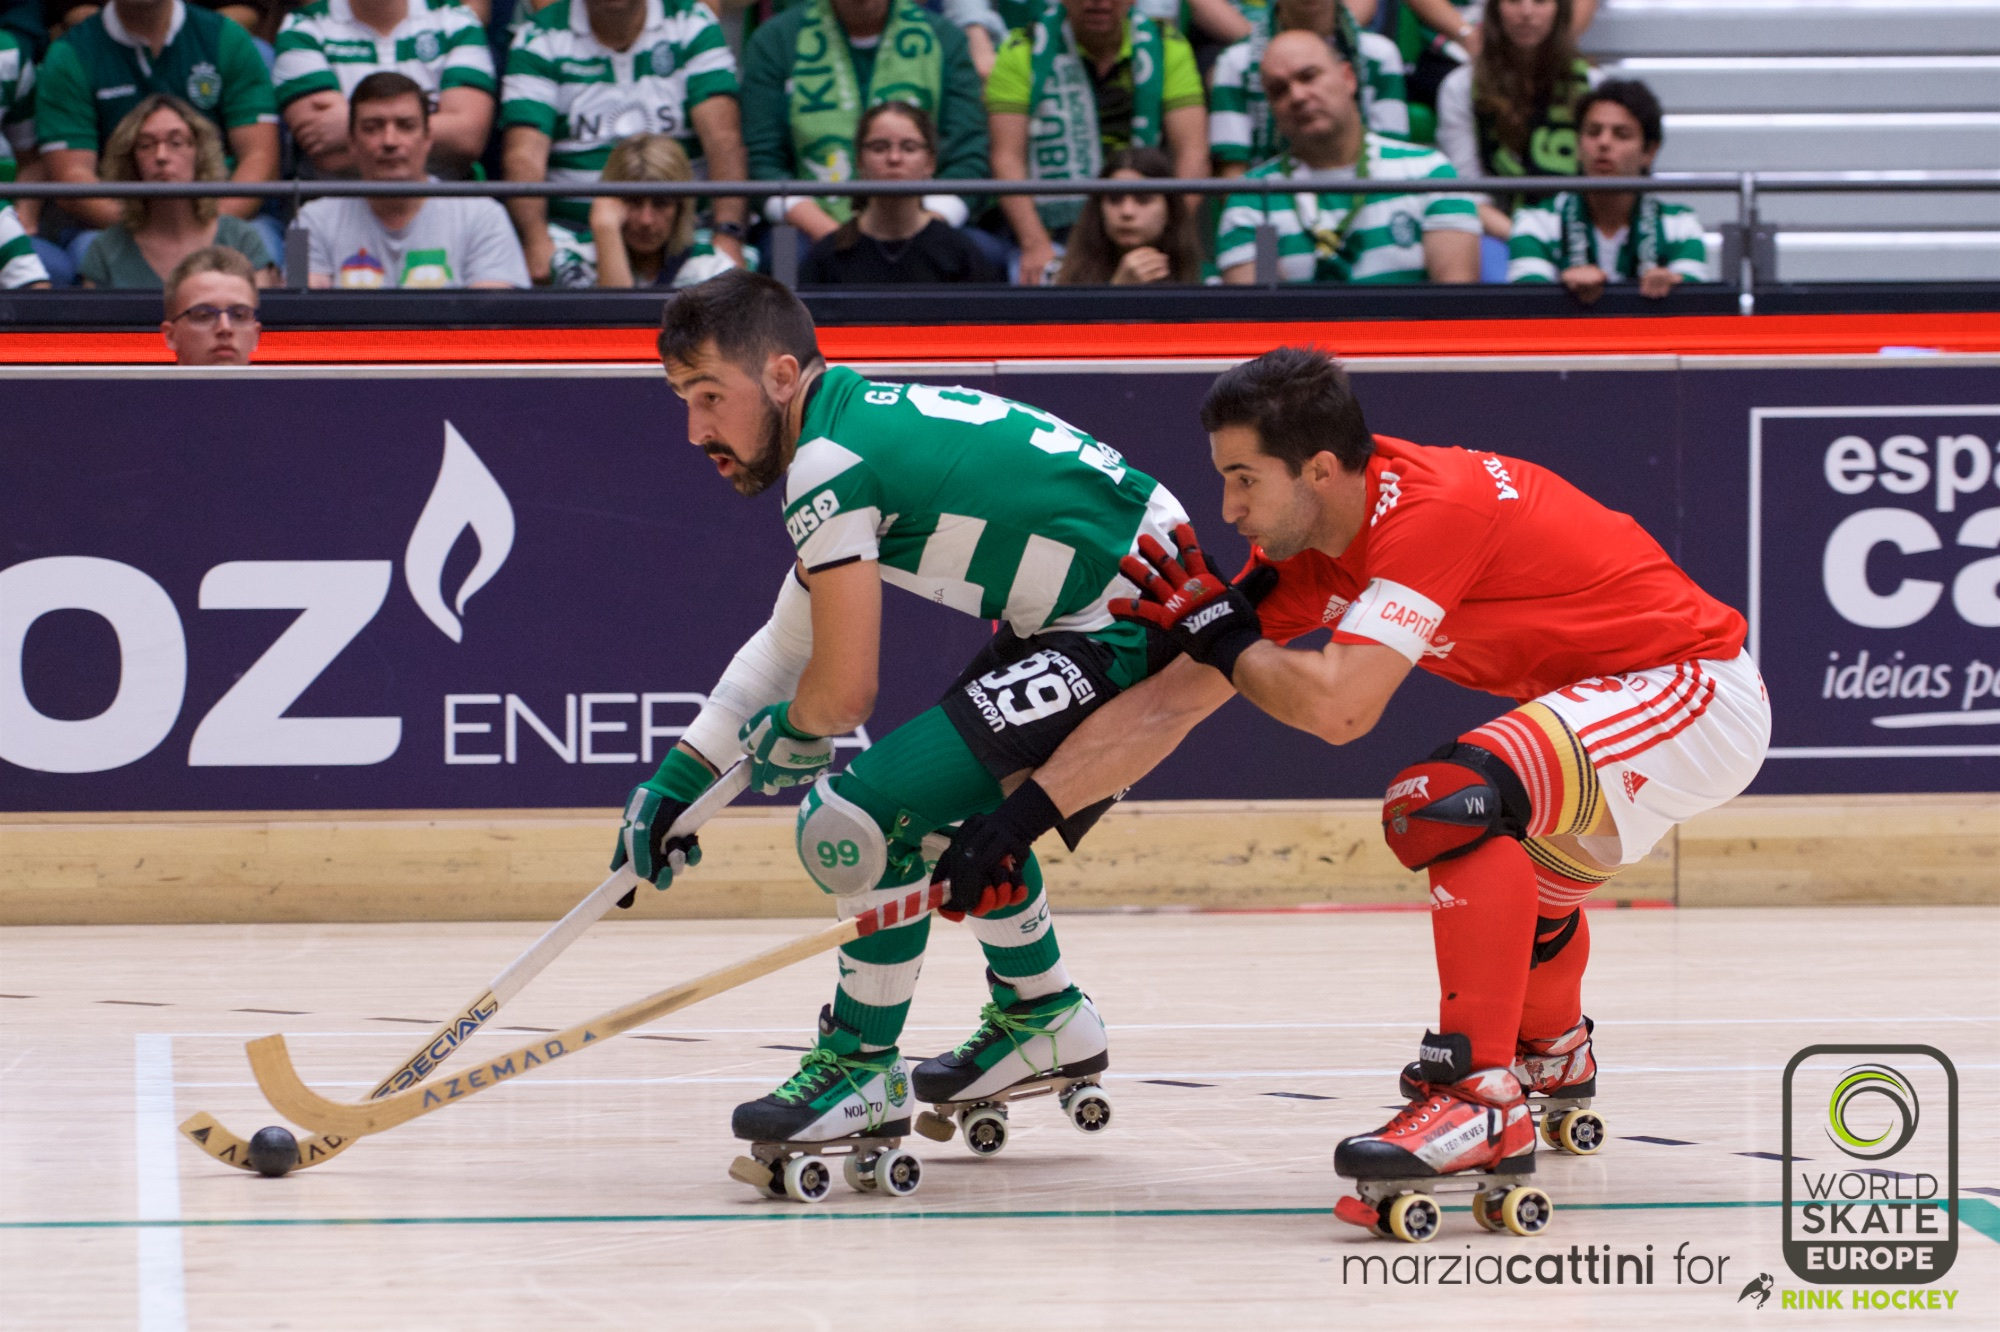 PHOTOS – 11/05/2019 - EUROLEAGUE F4 - Sporting x Benfica